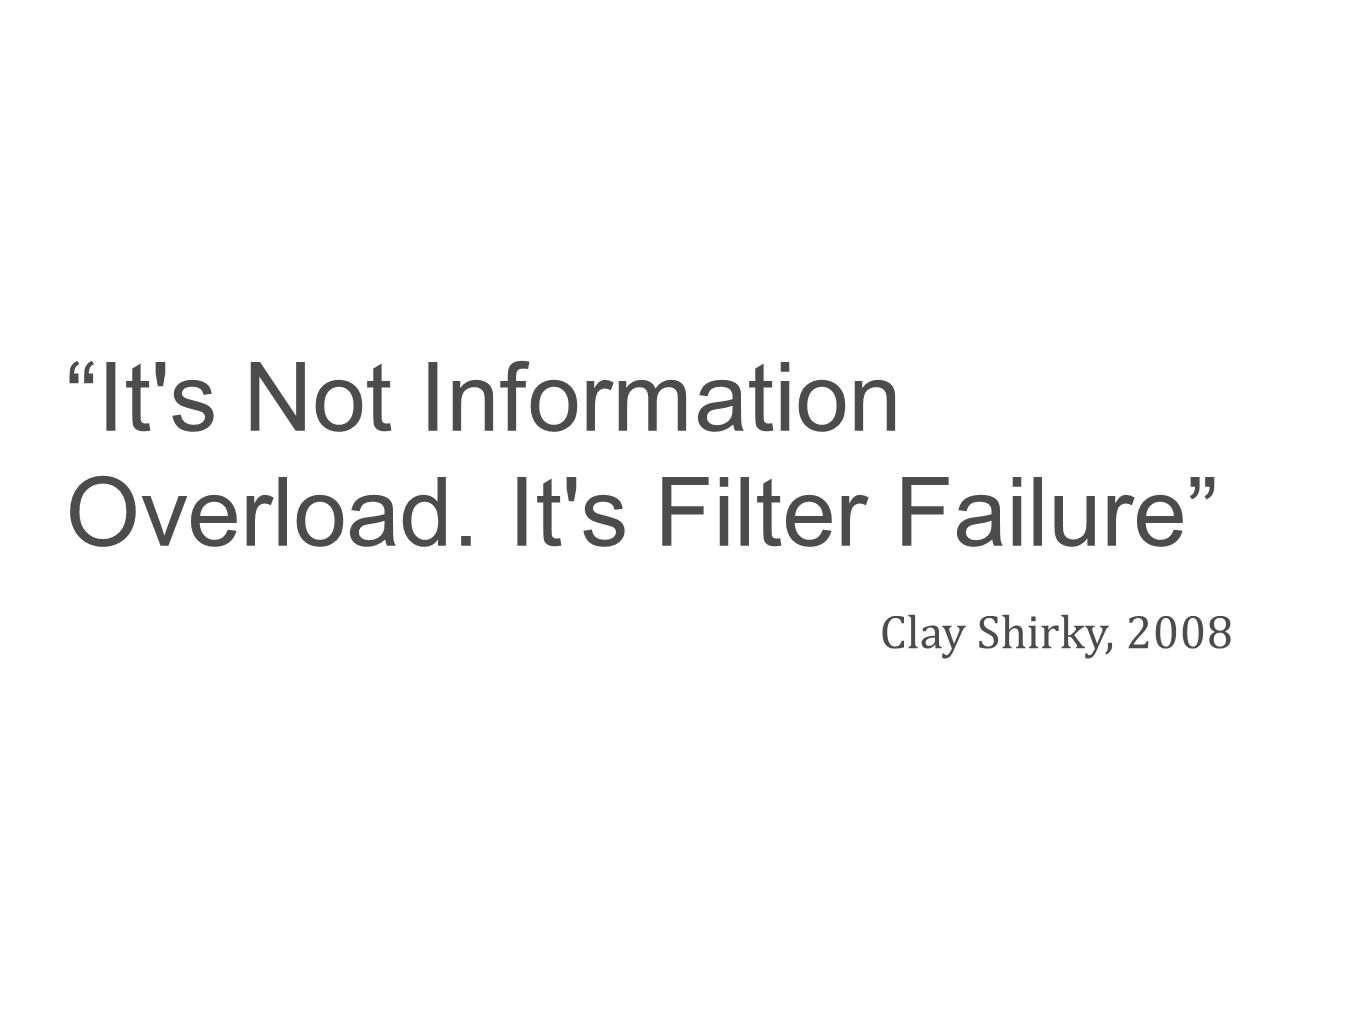 It's Not Information Overload. It's Filter Failure Clay Shirky, 2008